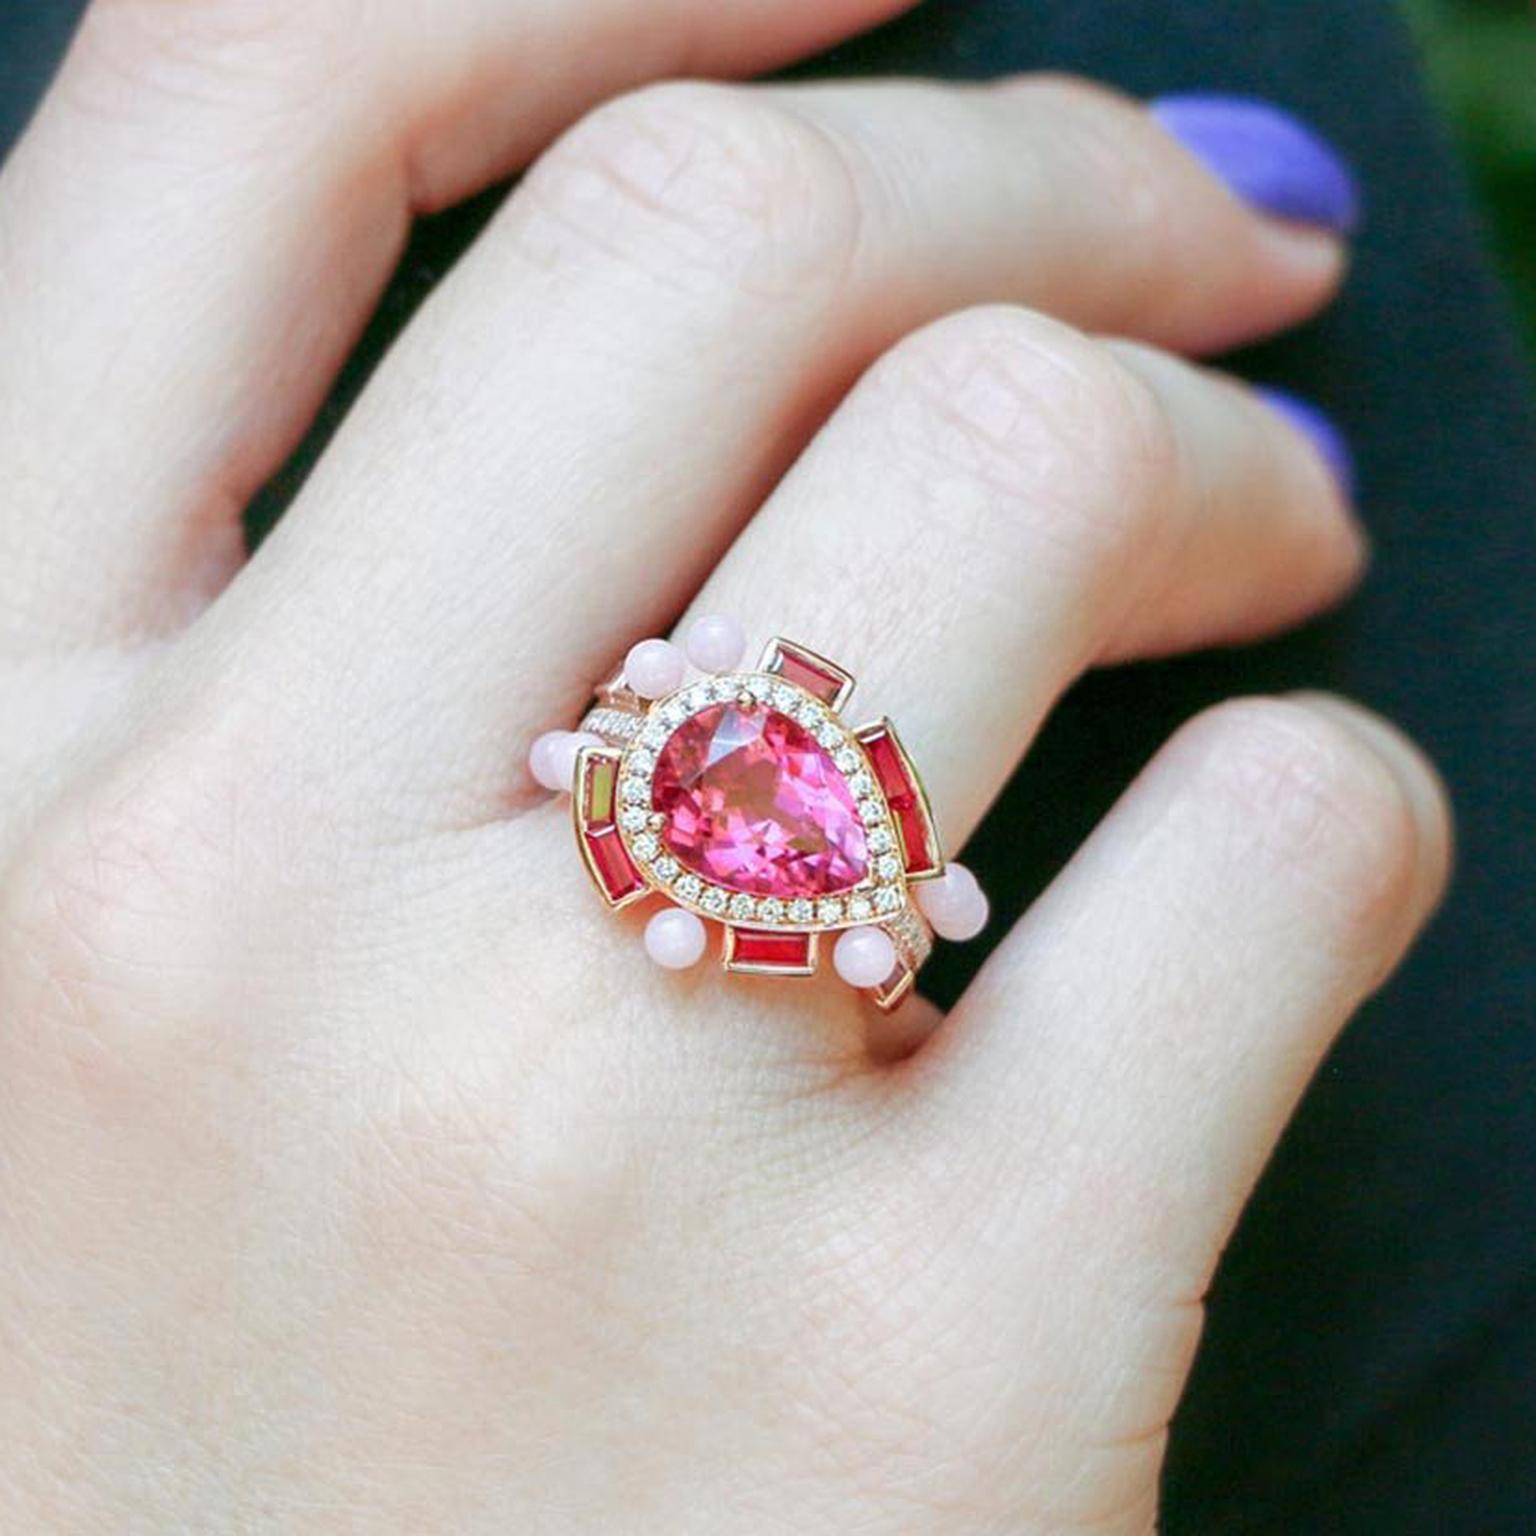 Sarah Ho Wisteria rubellite ring on finger